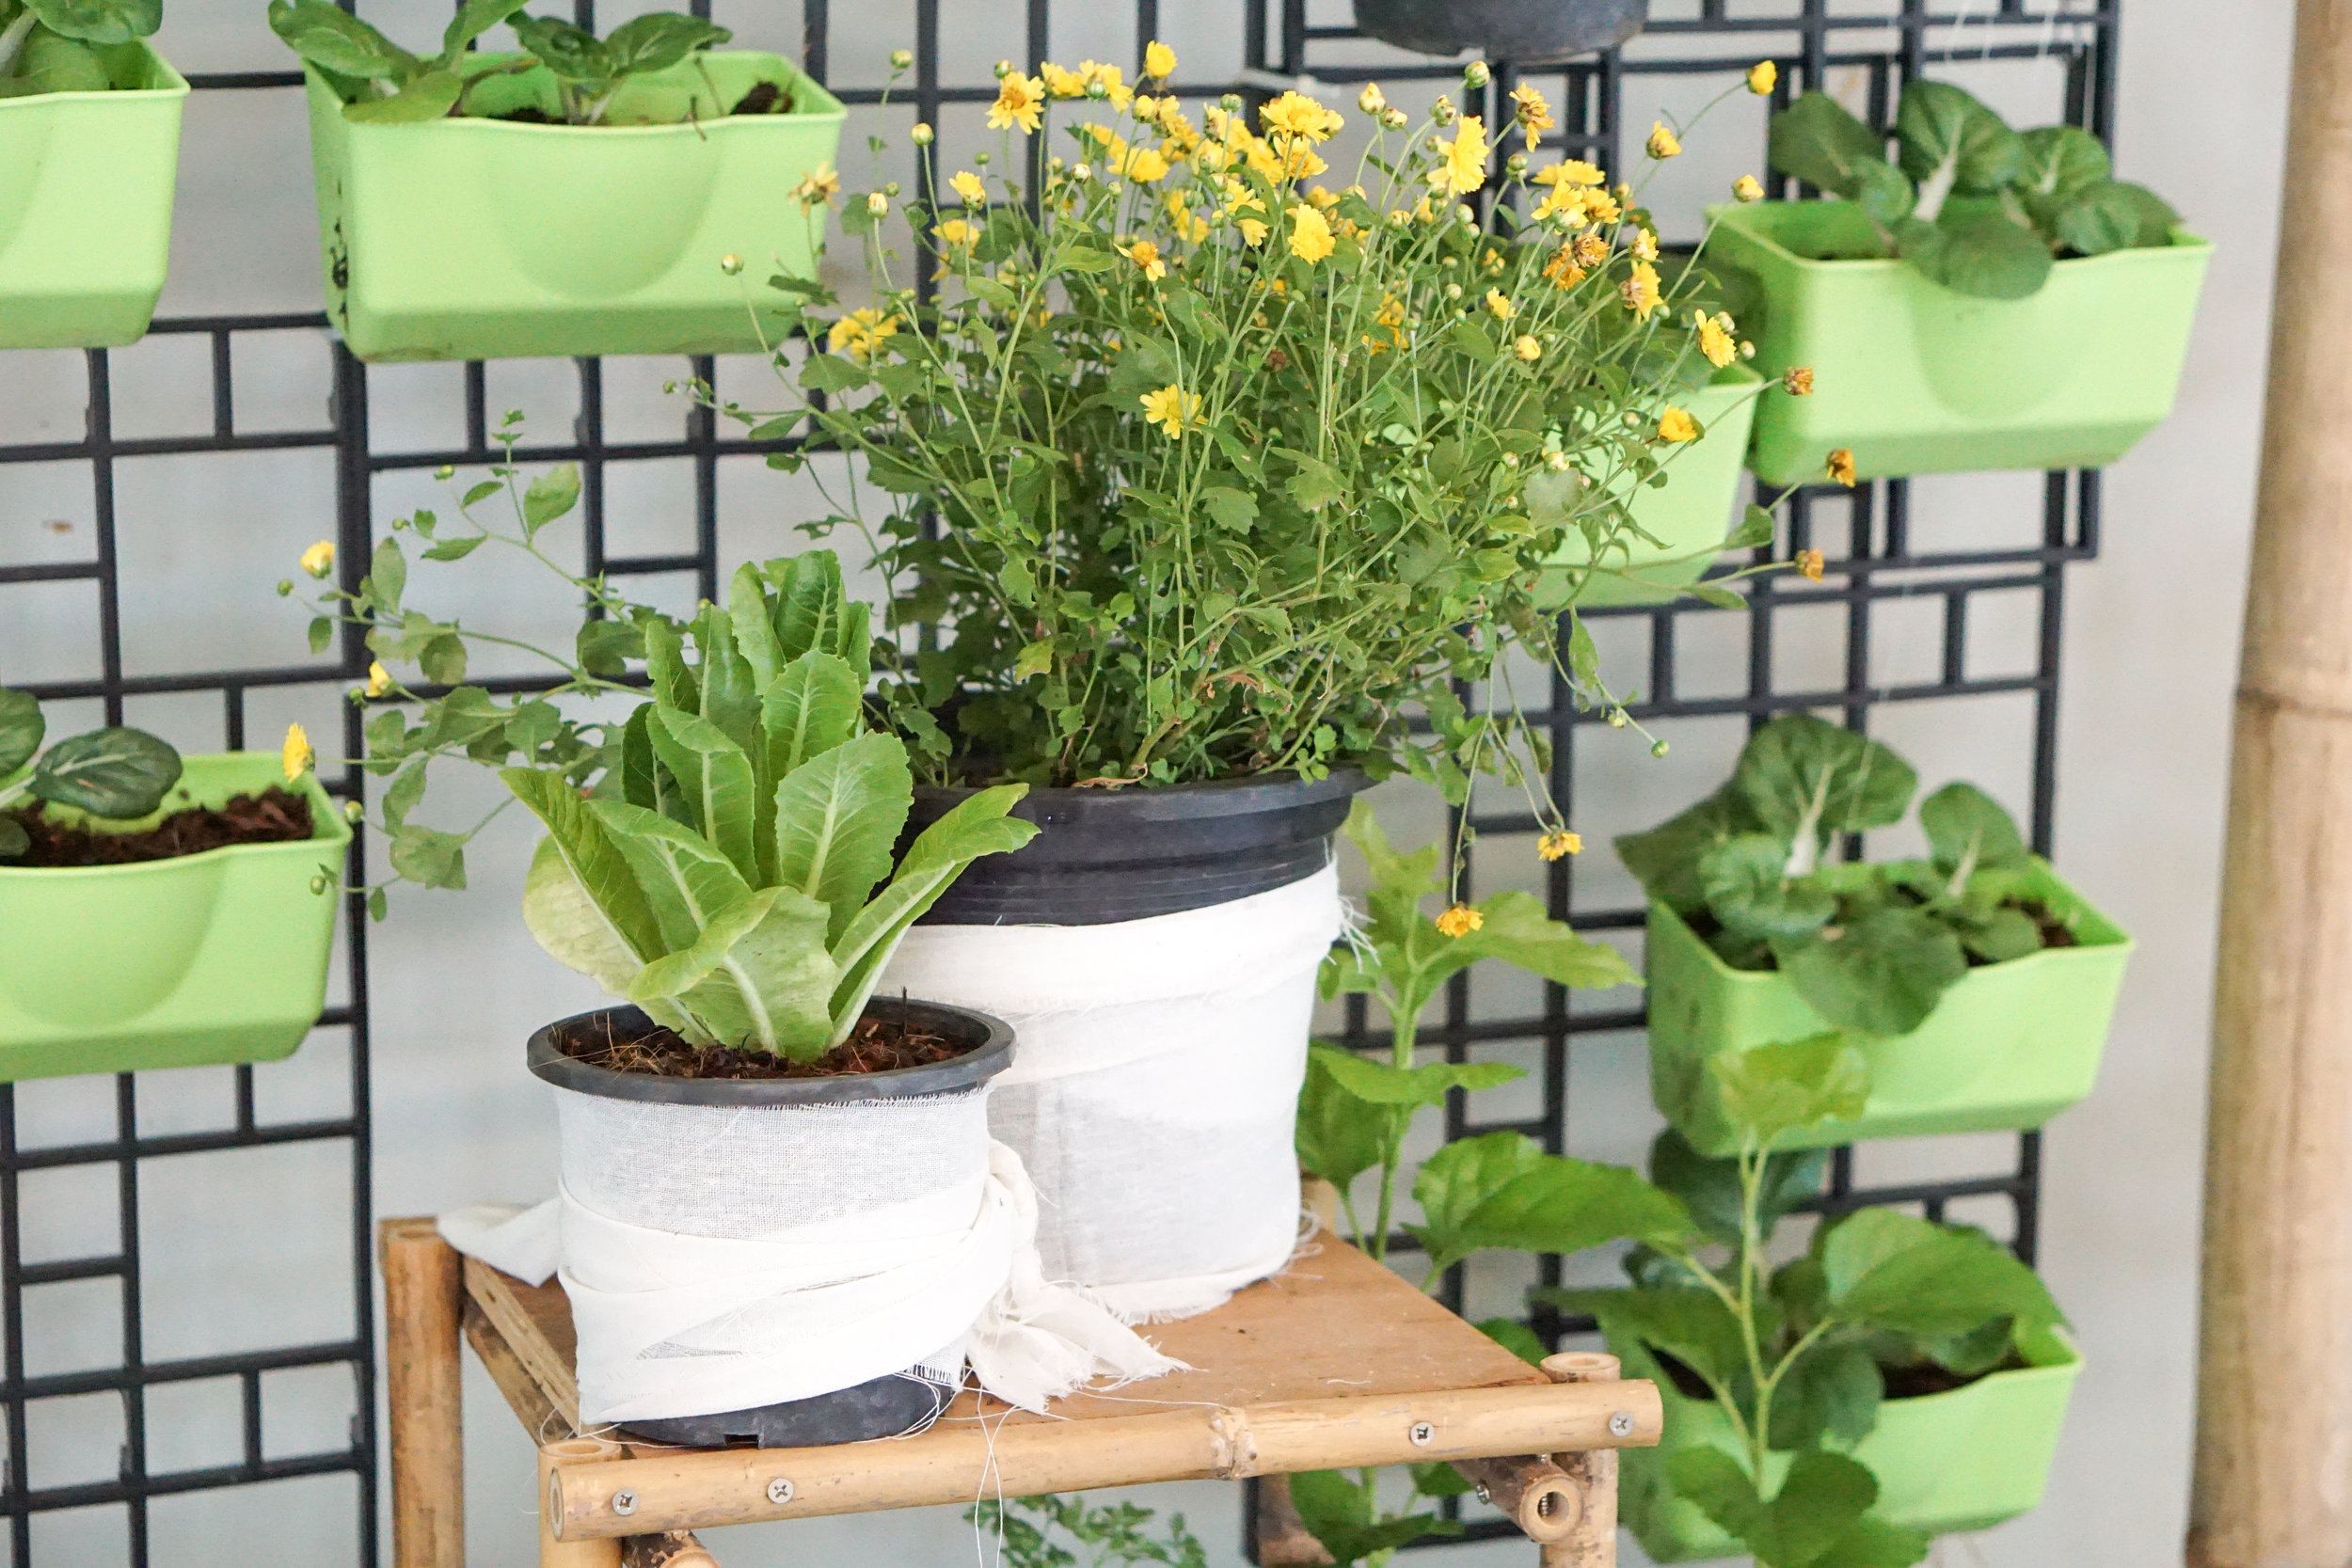 City Farming for a Sustainable City Event: Details from the photo corner with vertical garden